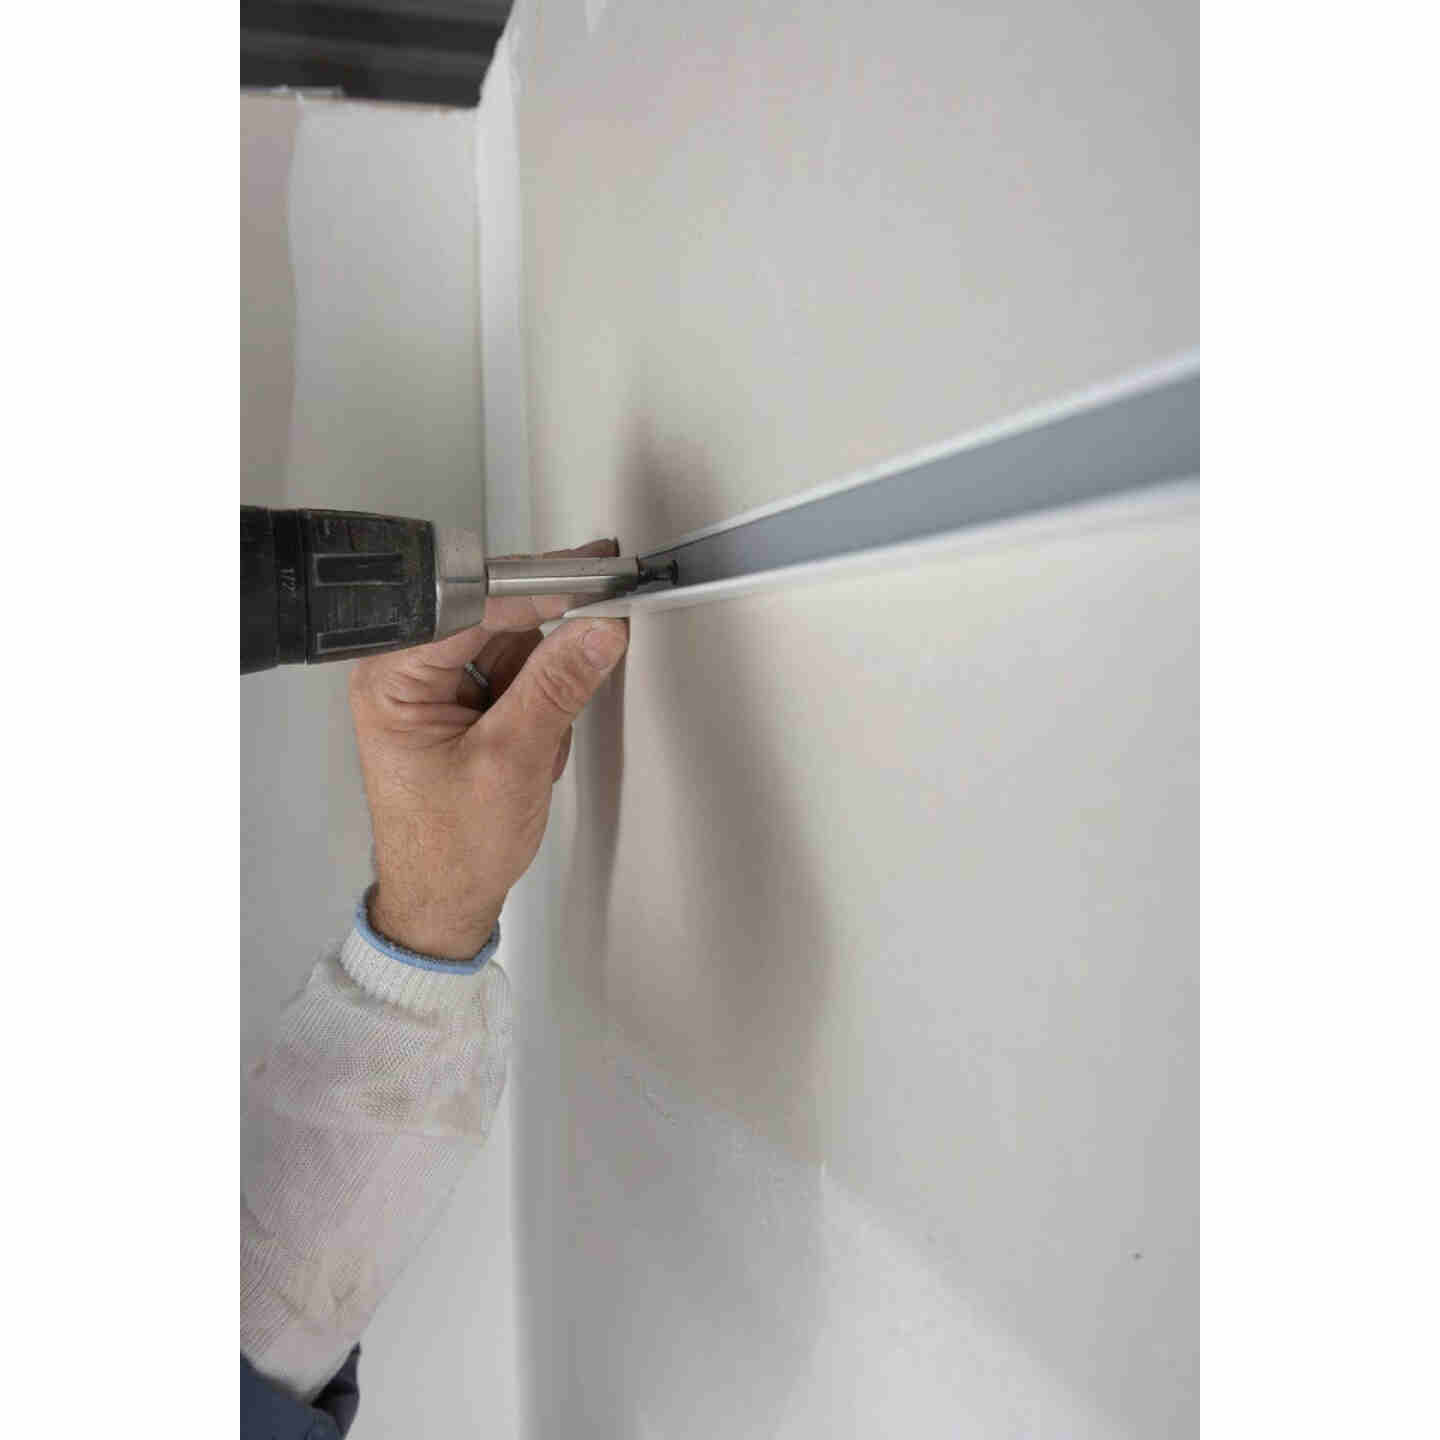 Donn 12 Ft. x 7/8 in. White Steel Ceiling Wall Molding Image 4